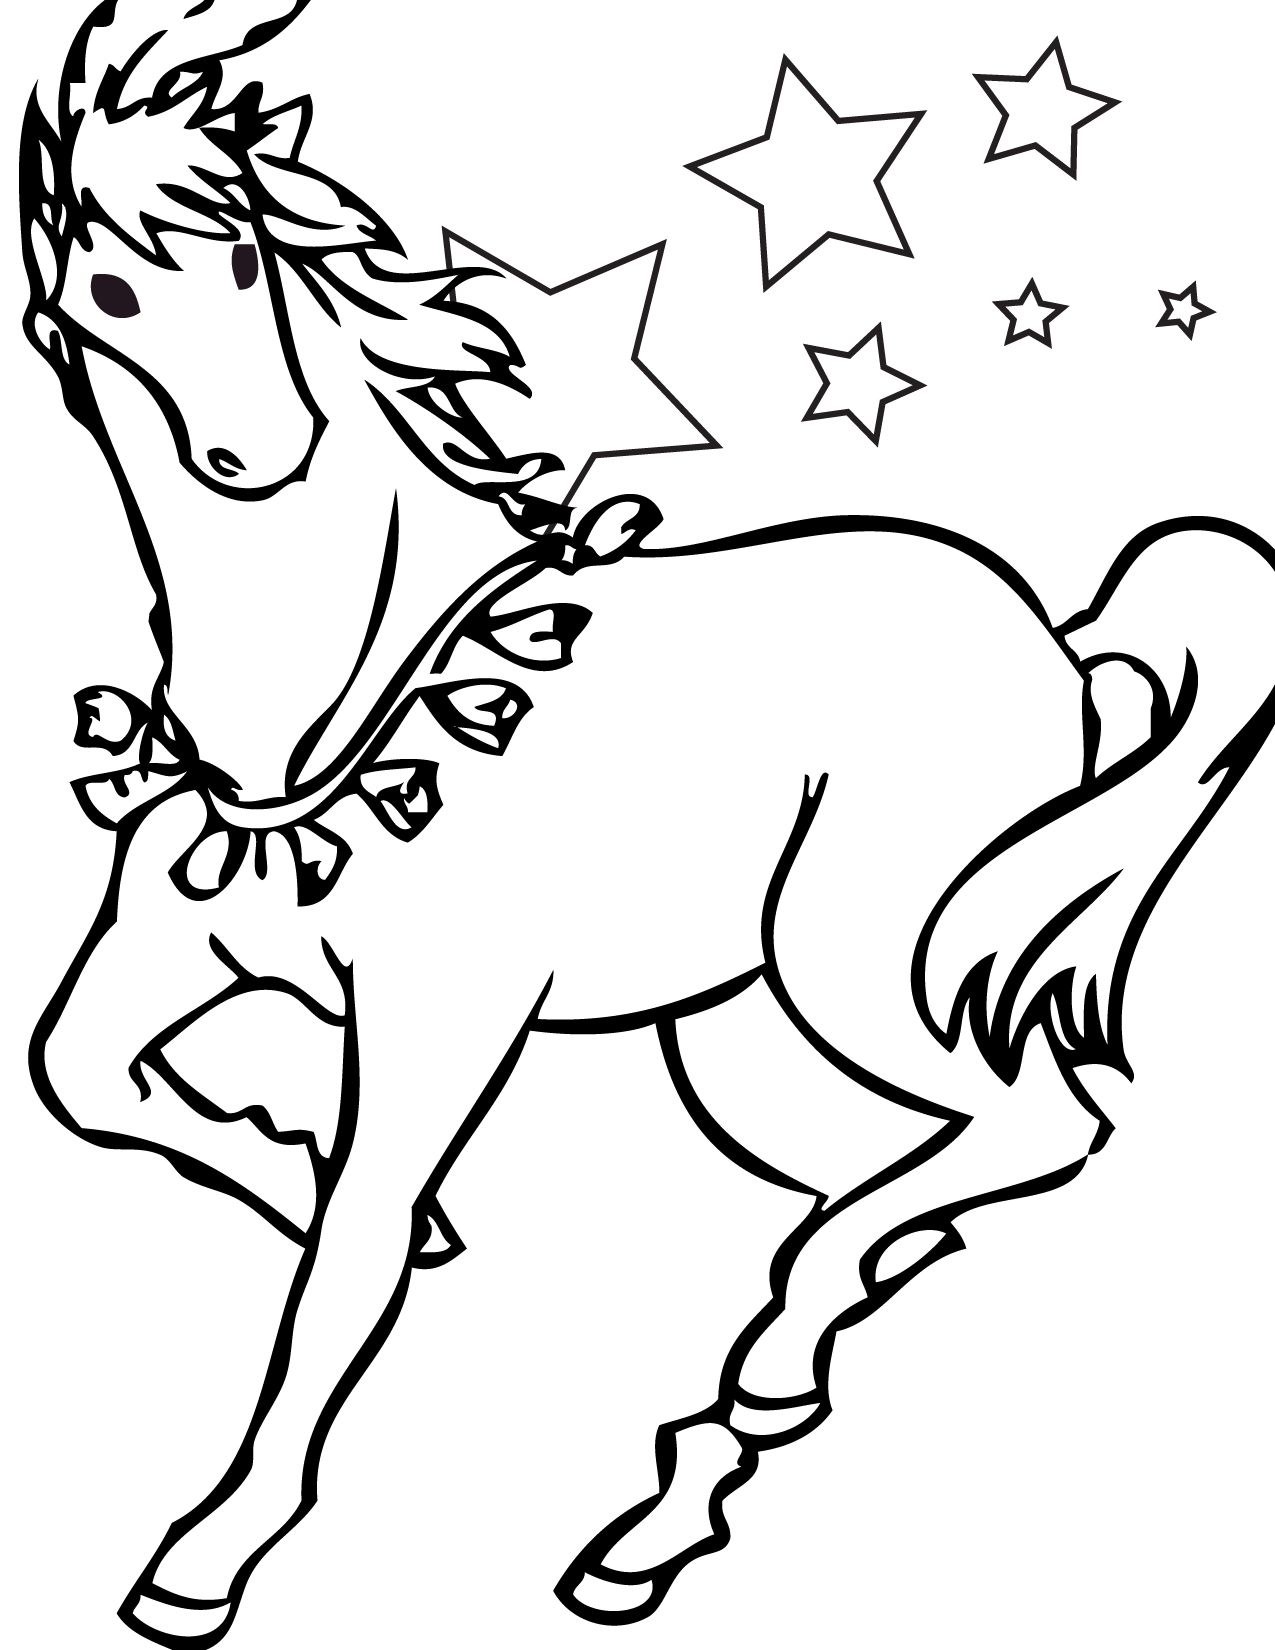 Horse Acts Ink Jpg 1 275 1 650 Pixels Horse Coloring Books Horse Coloring Pages Horse Coloring